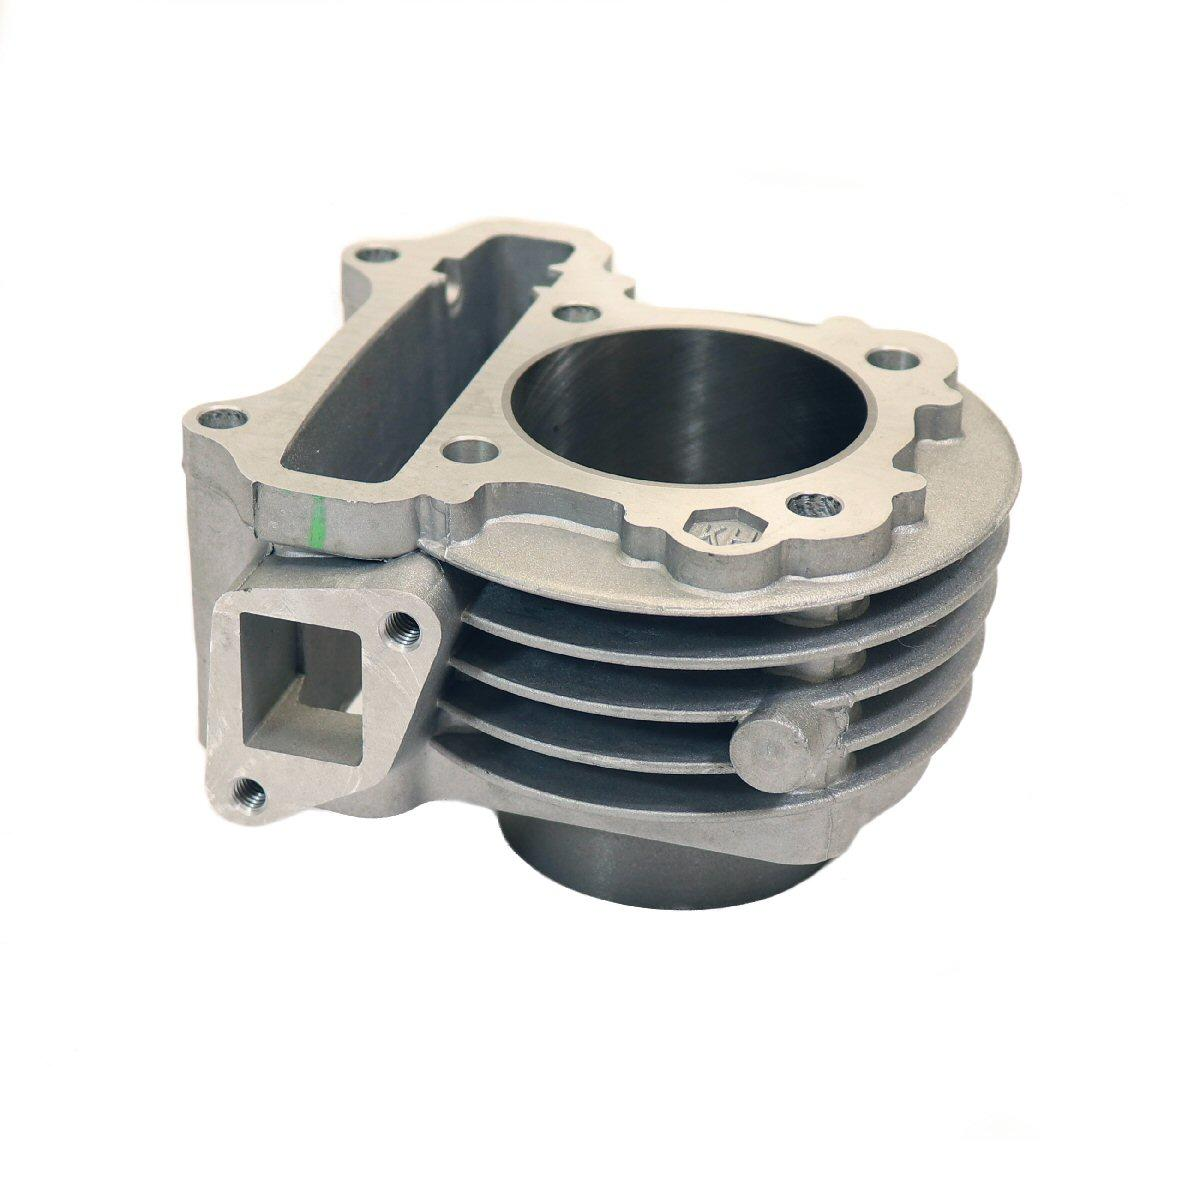 Ssp-g Qmb139 52mm Cylinder And Head Kit